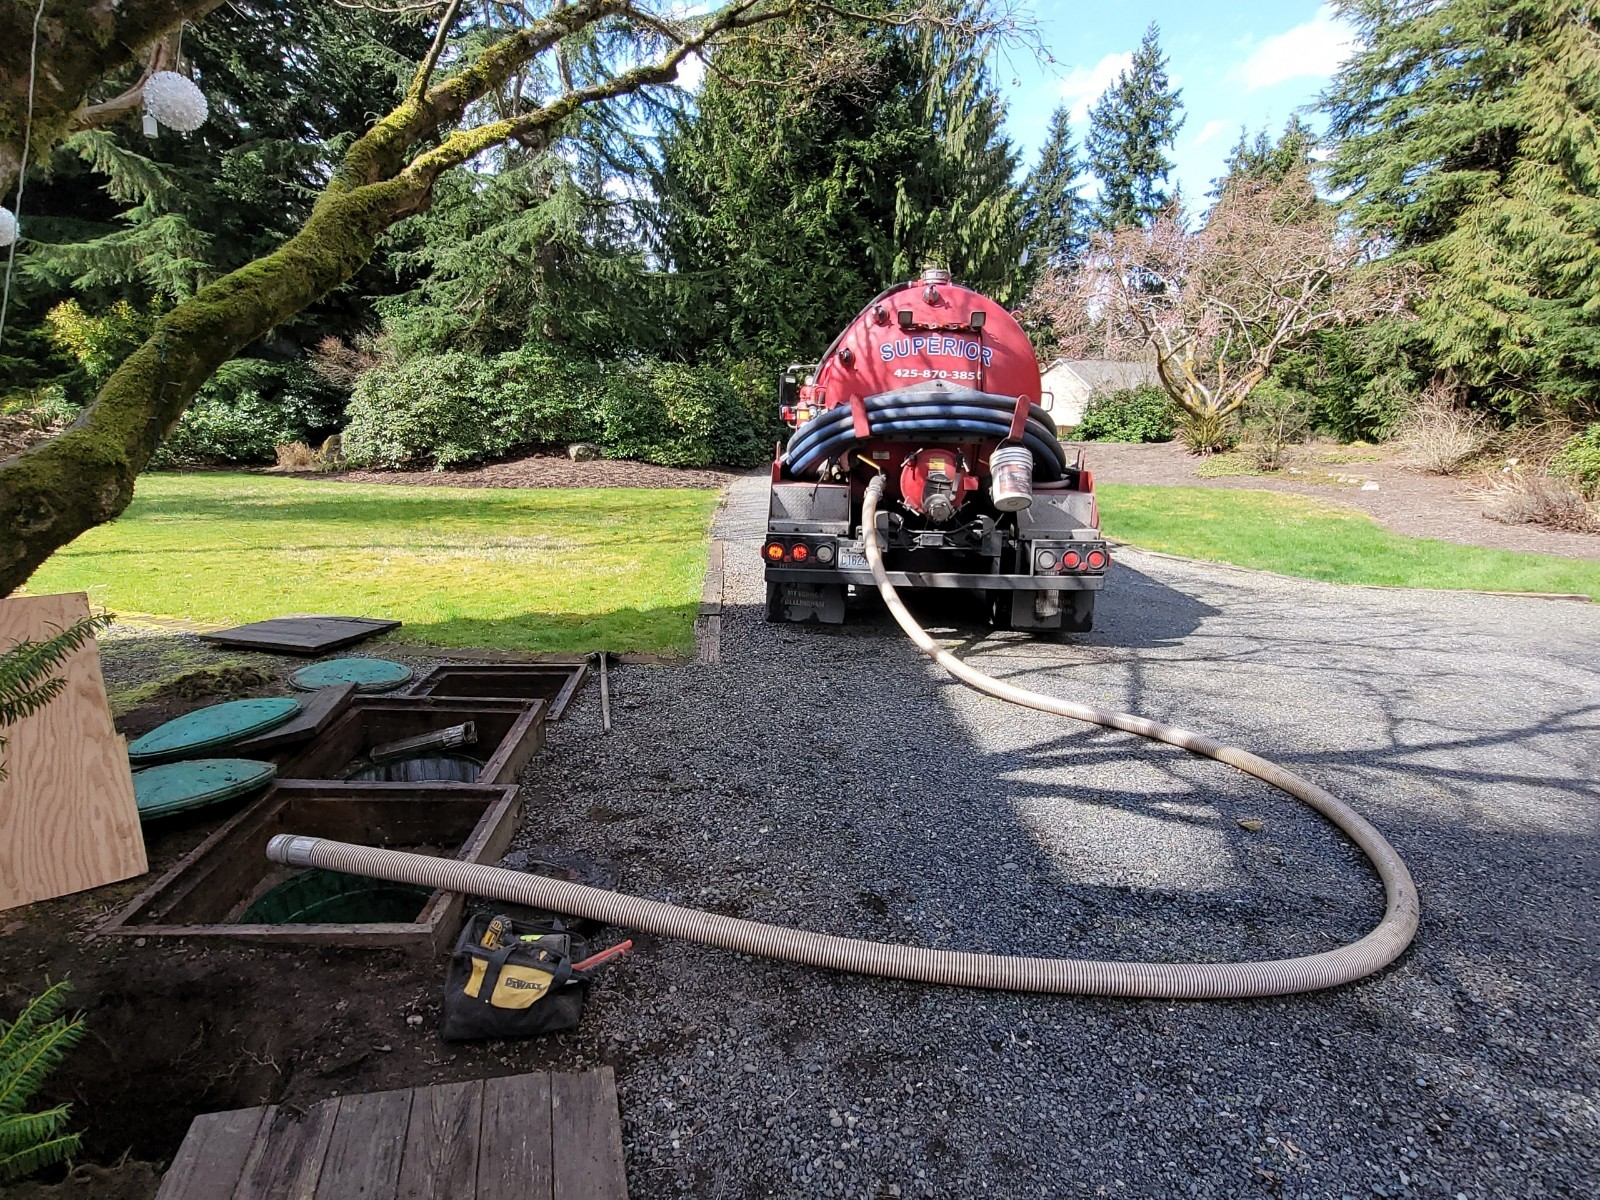 Taking Care of Your Home Means Regular Septic Service in Arlington